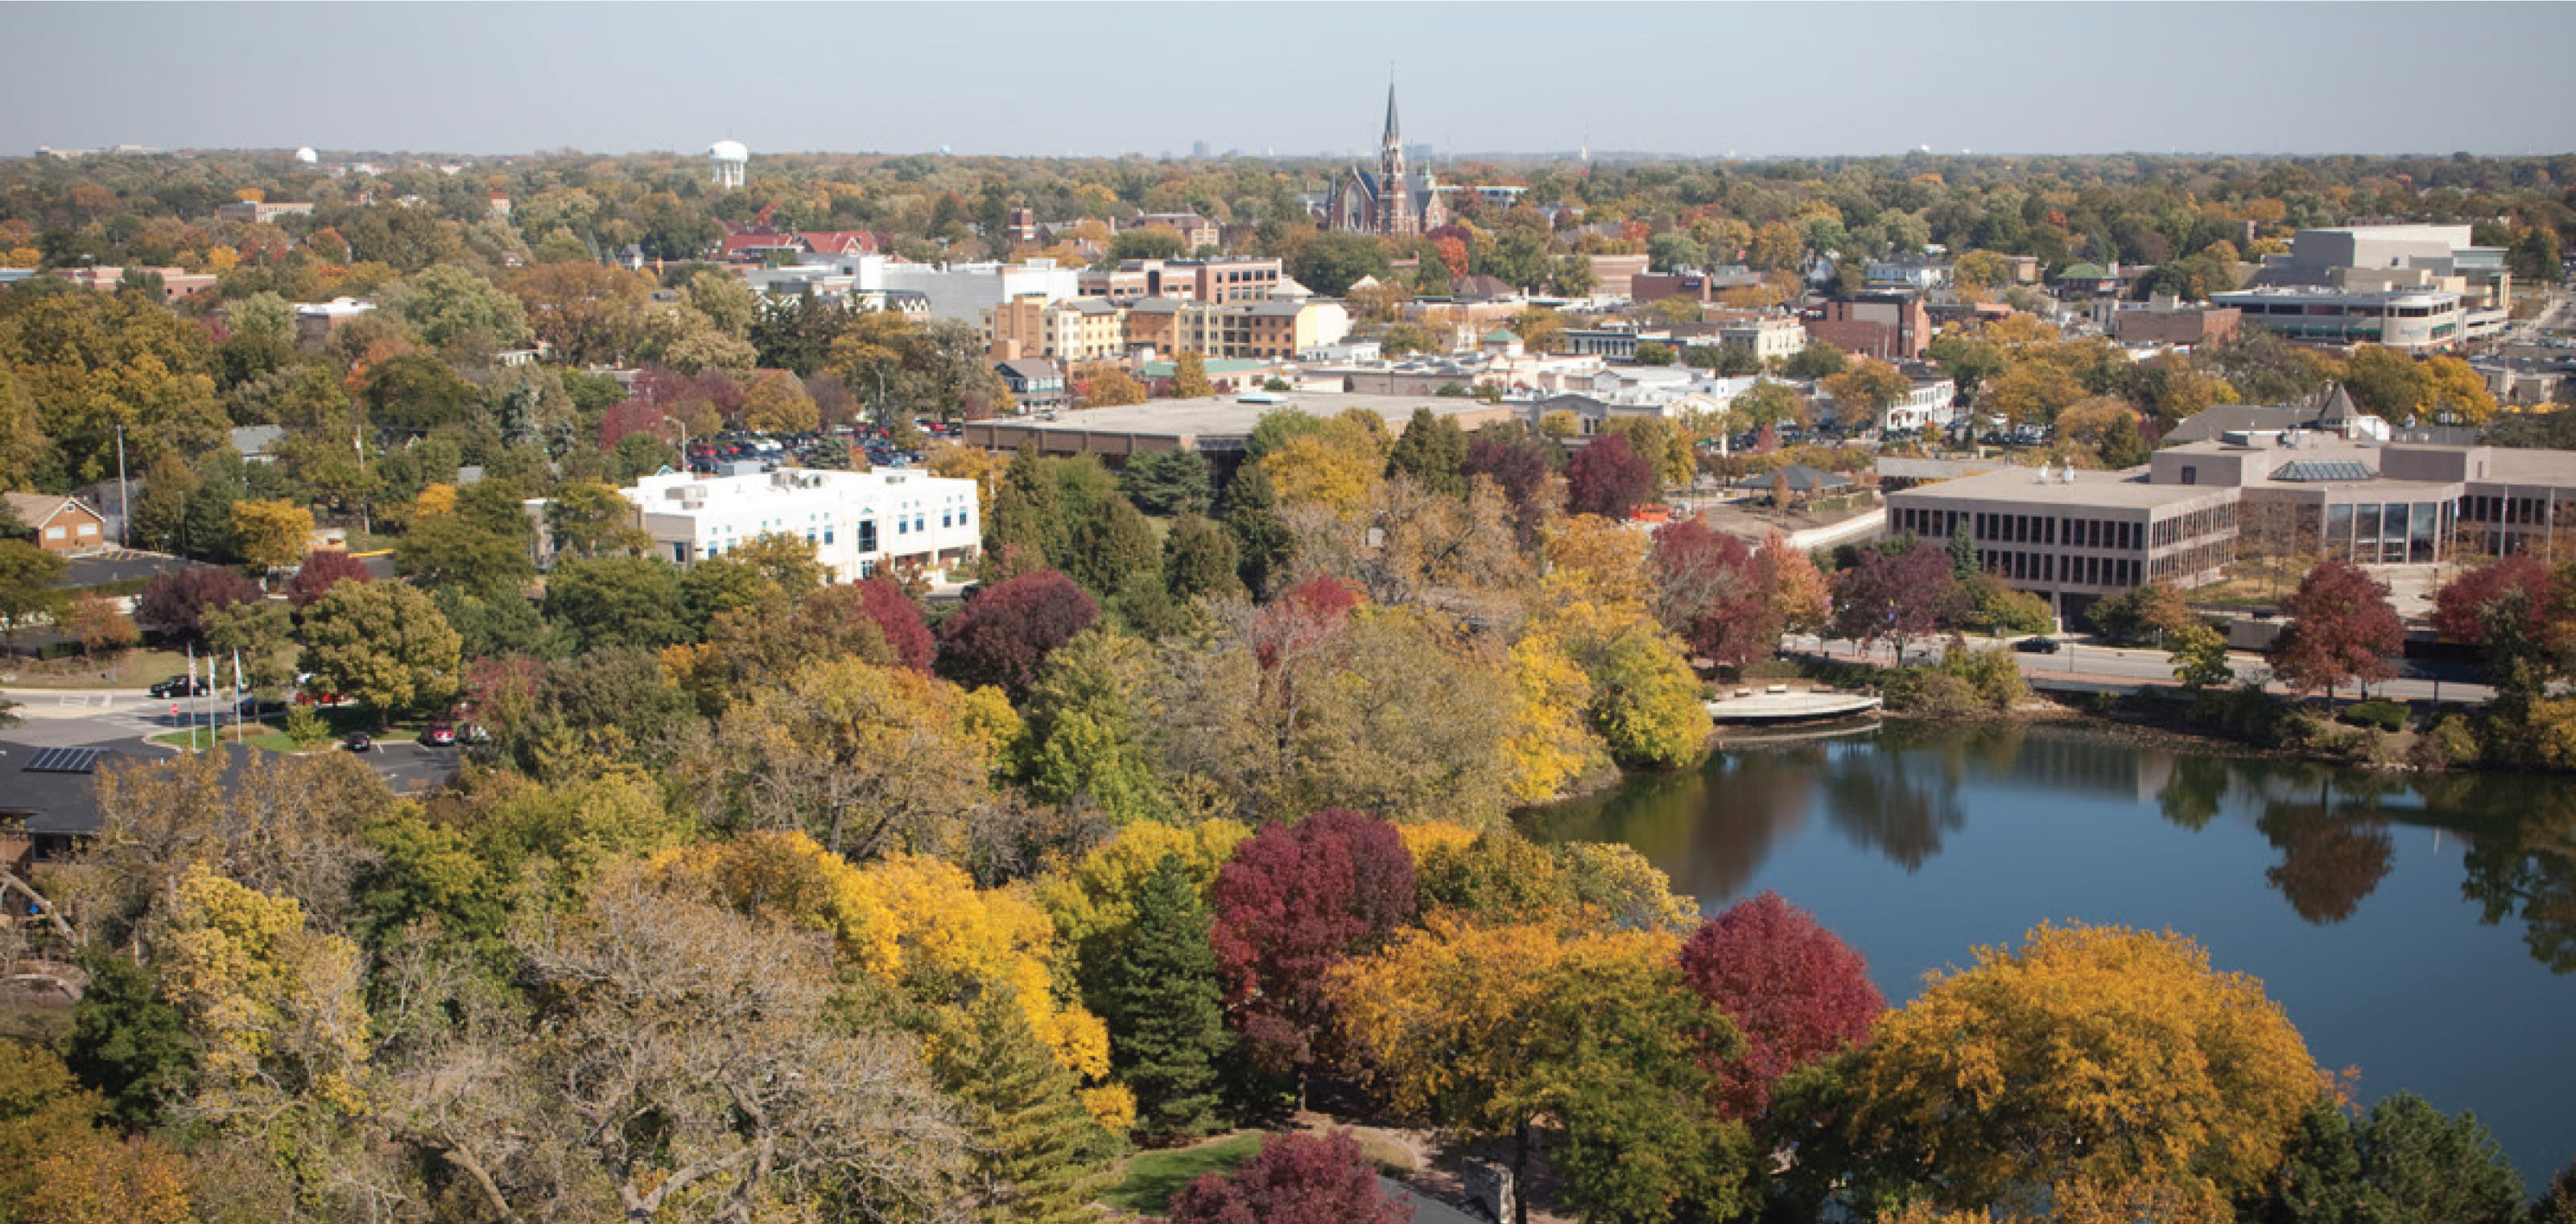 View of Naperville, Illinois Neighborhood